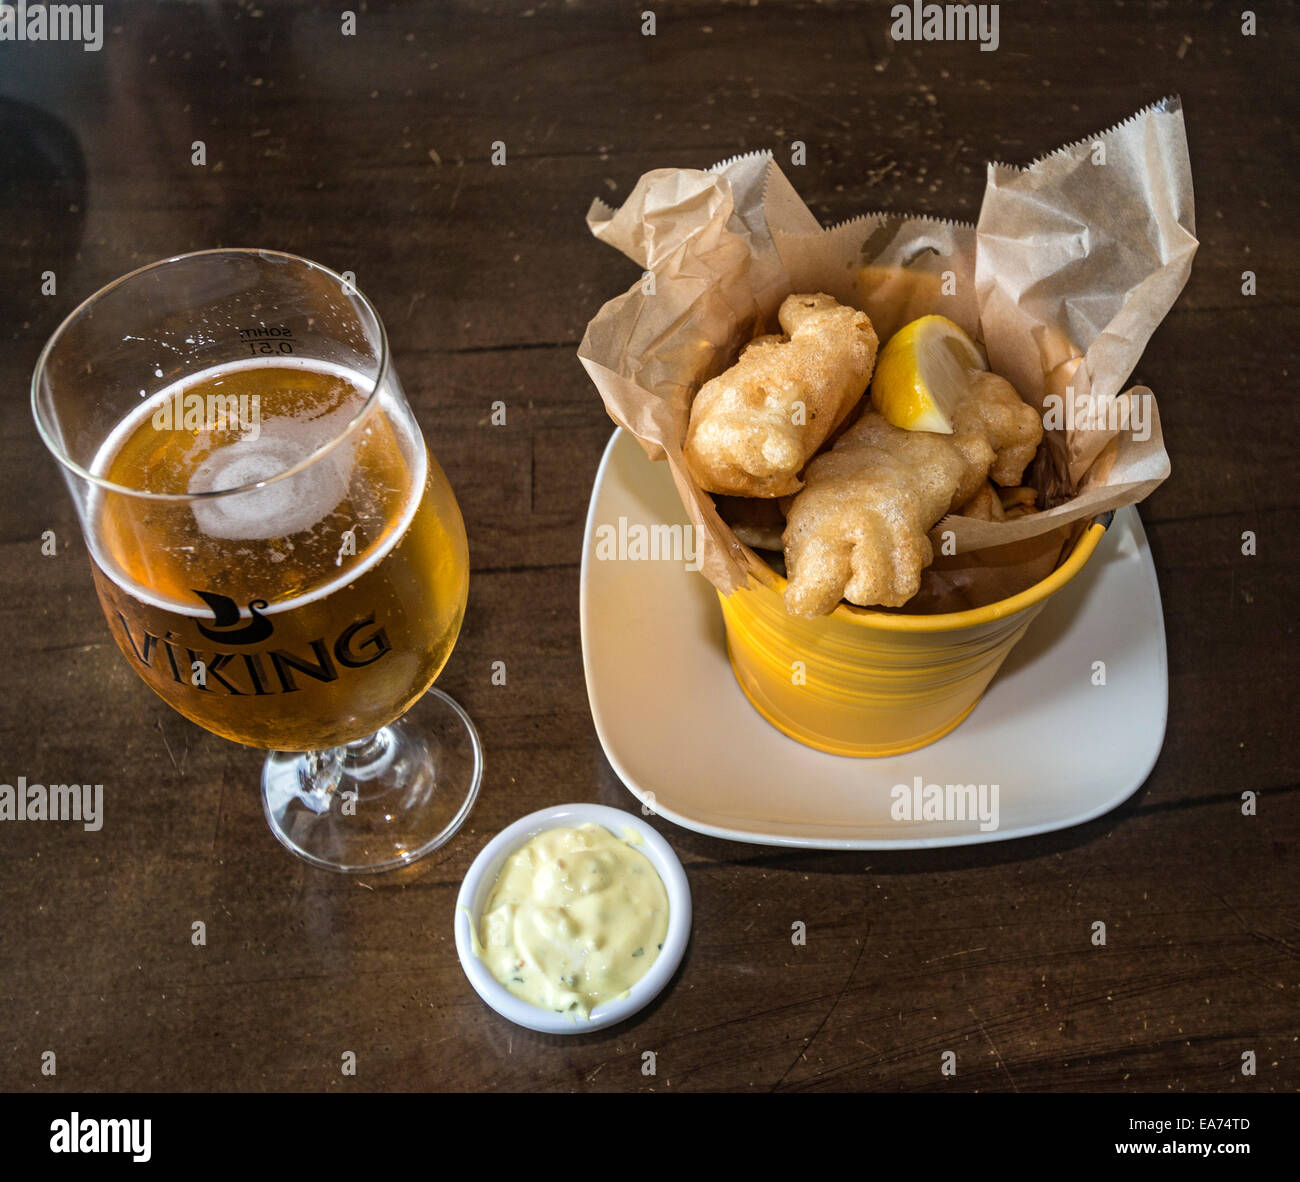 Fish & chips and beer at a local restaurant in Reykjavik, Iceland. - Stock Image